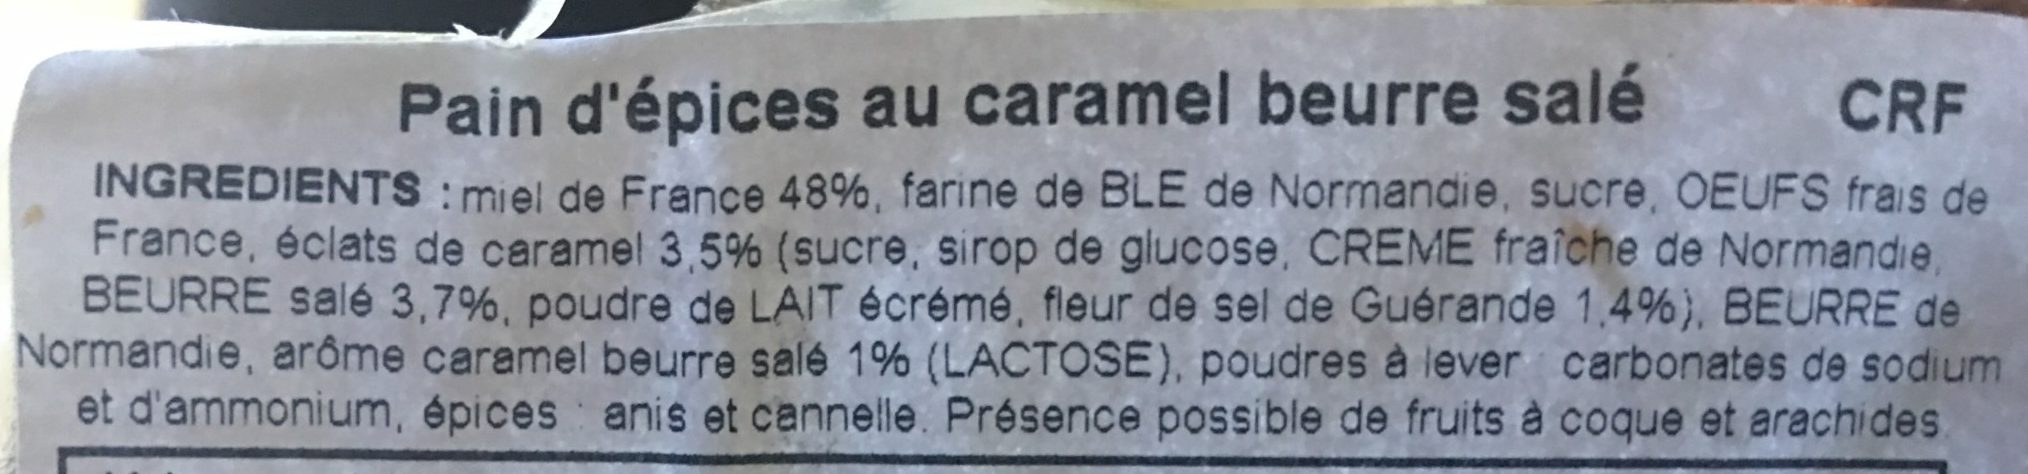 Pain d'épices au caramel beurre salé - Ingredients